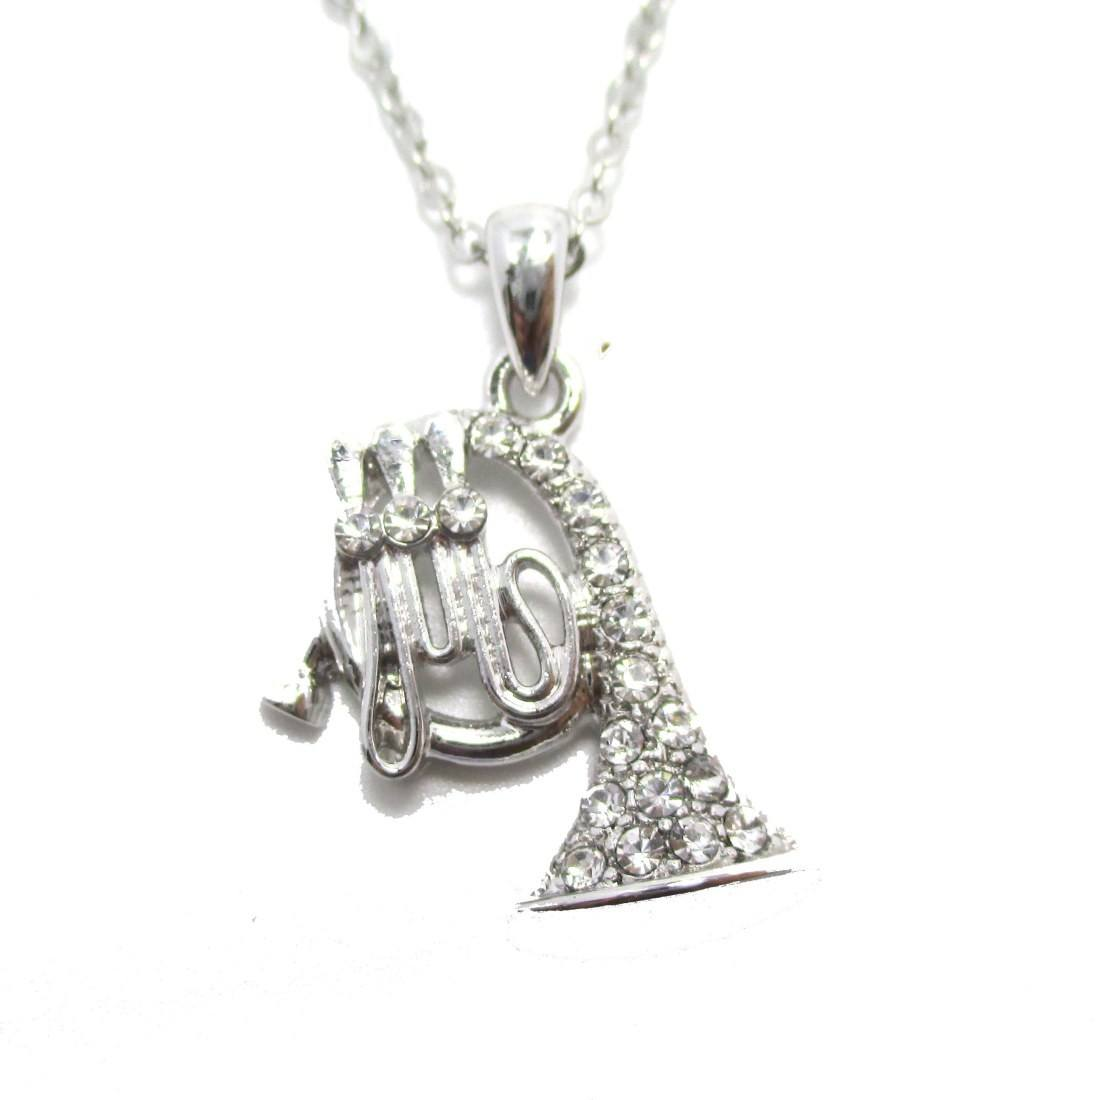 French Horn Shaped Rhinestone Charm Necklace in Silver